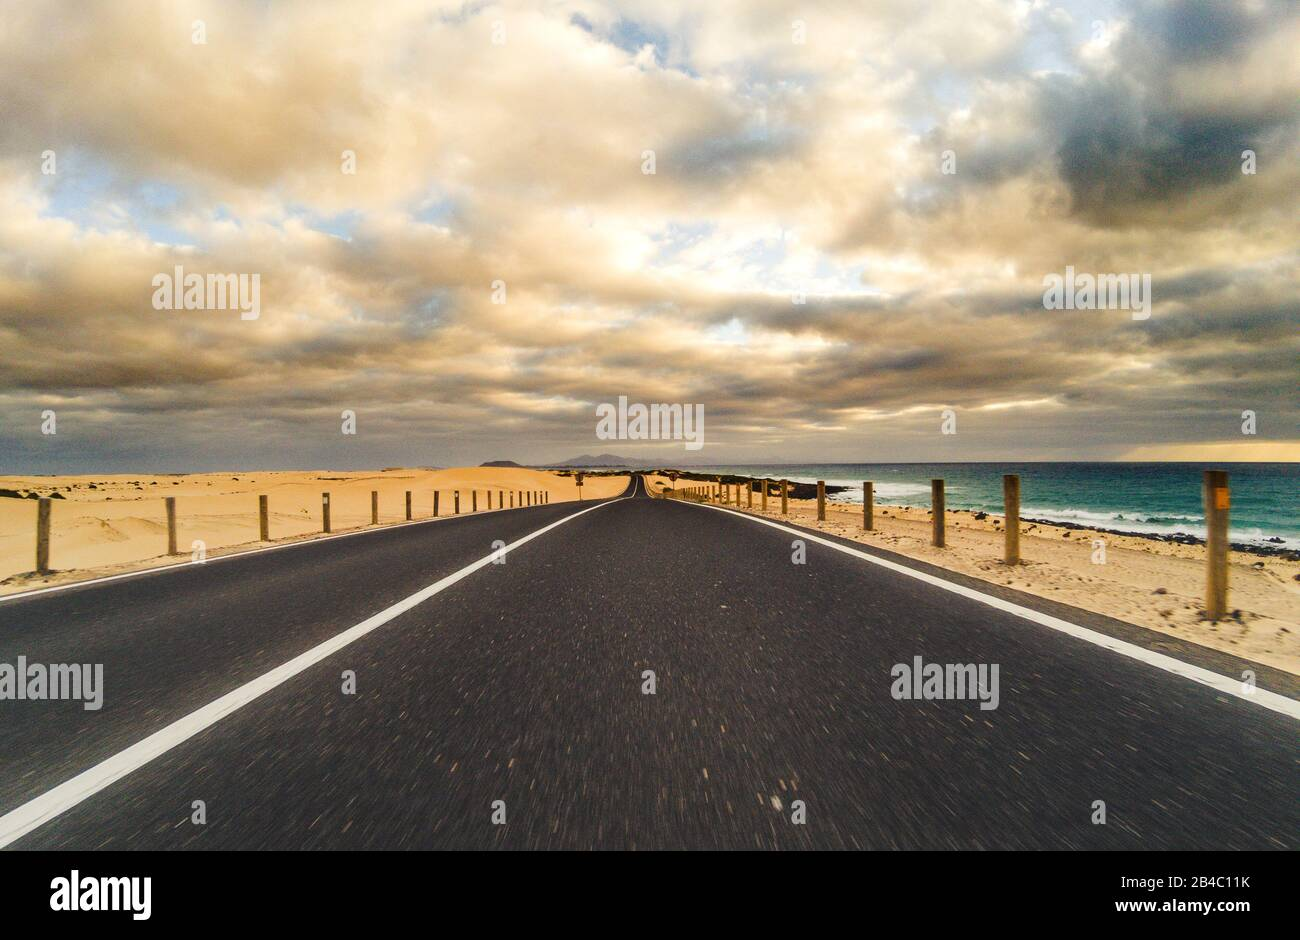 Long way road for travel car transportation concept with desert and beach on the side - sea water and cloudy beautiful sky in background - motion effect Stock Photo